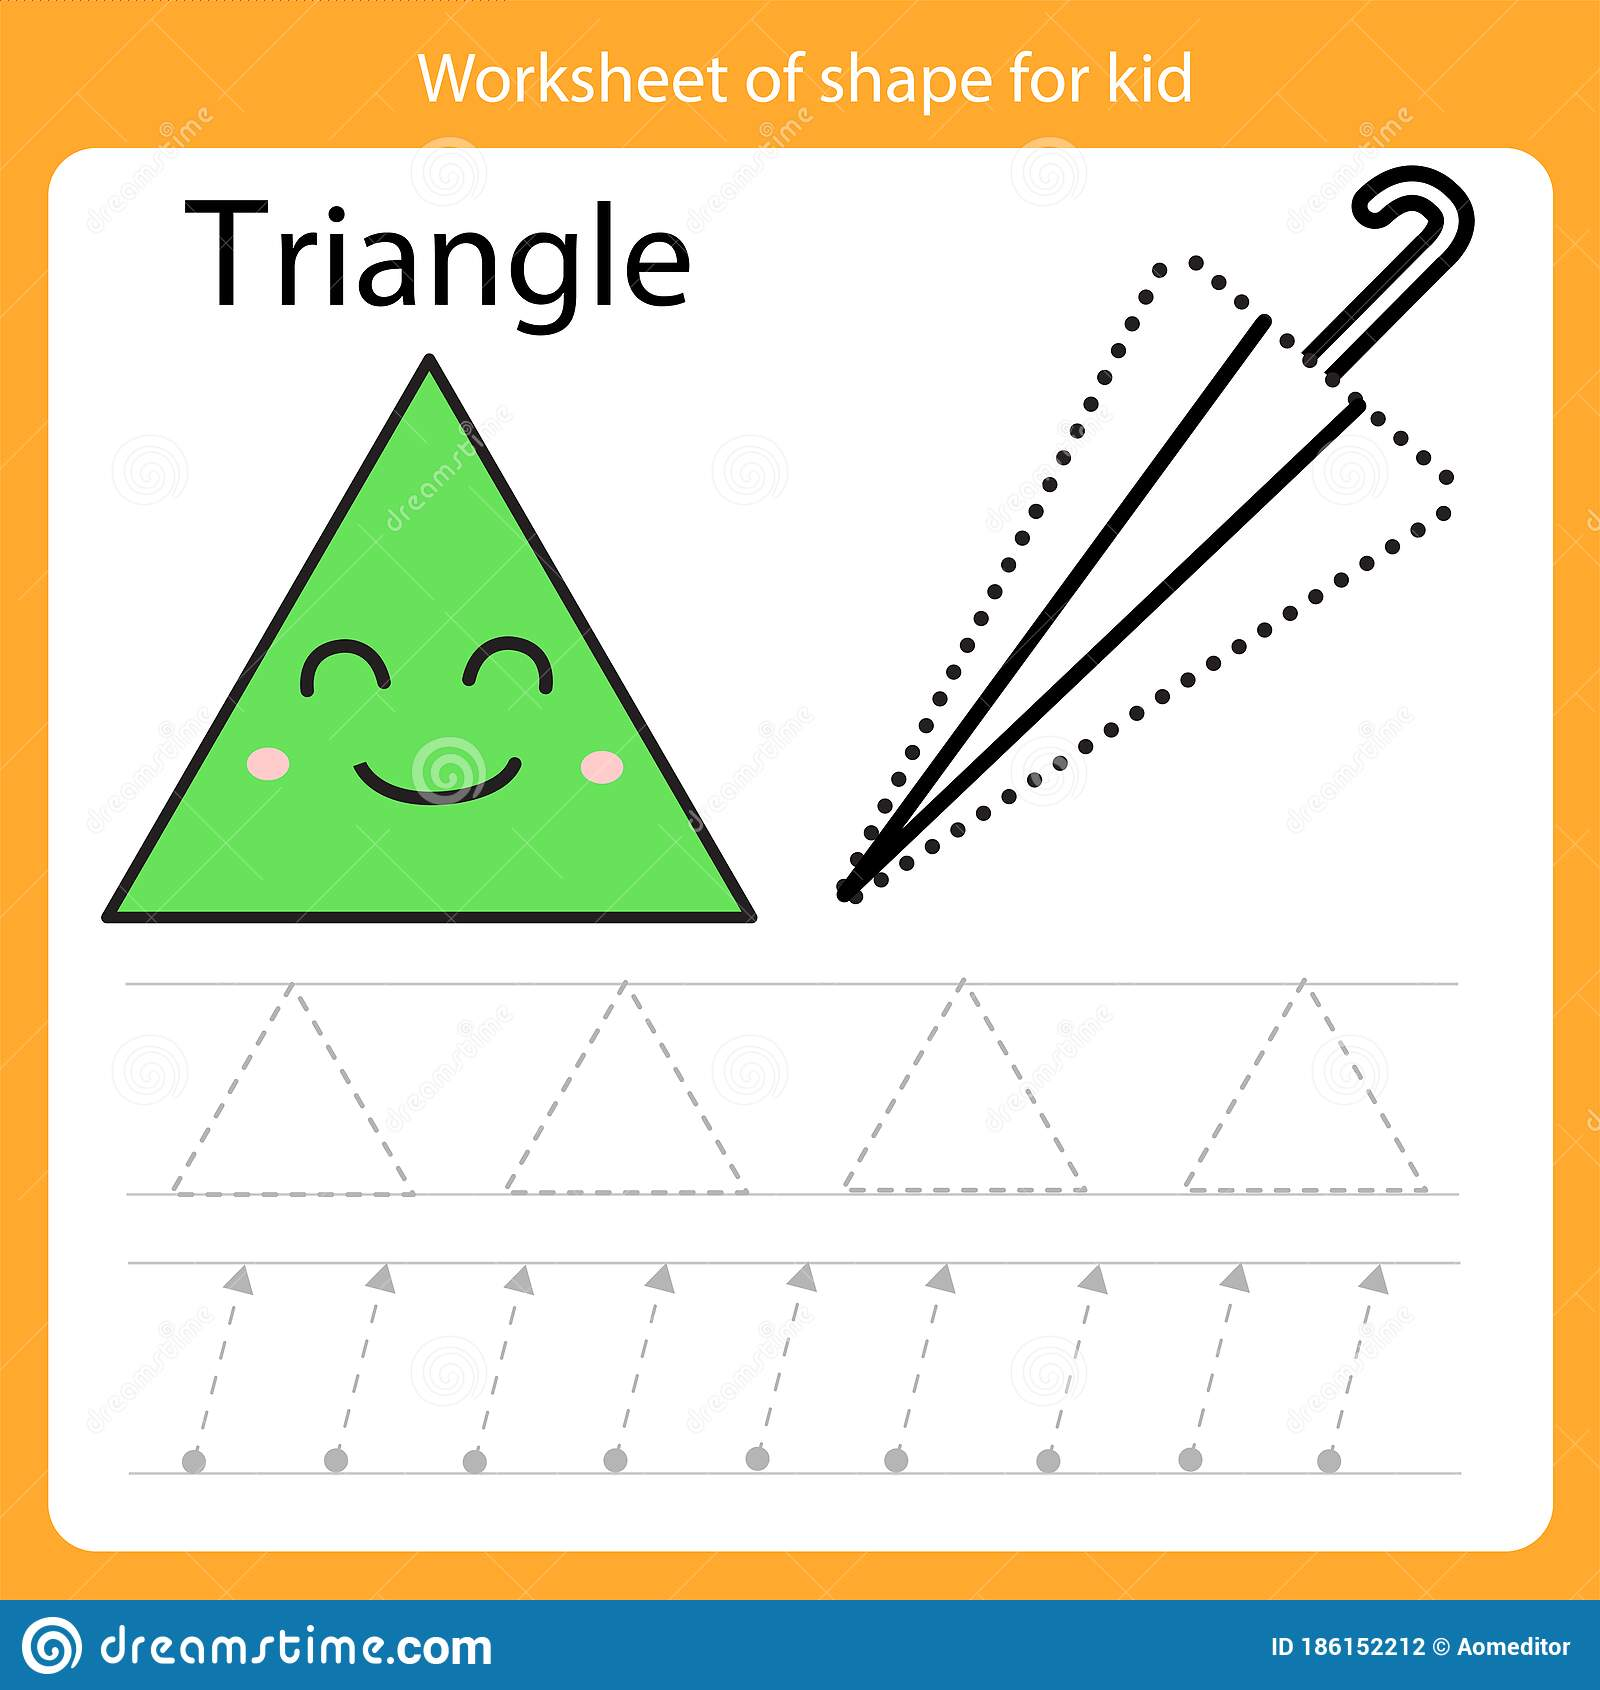 Illustrator Of Worksheet Of Shape For Kid Triangle Stock